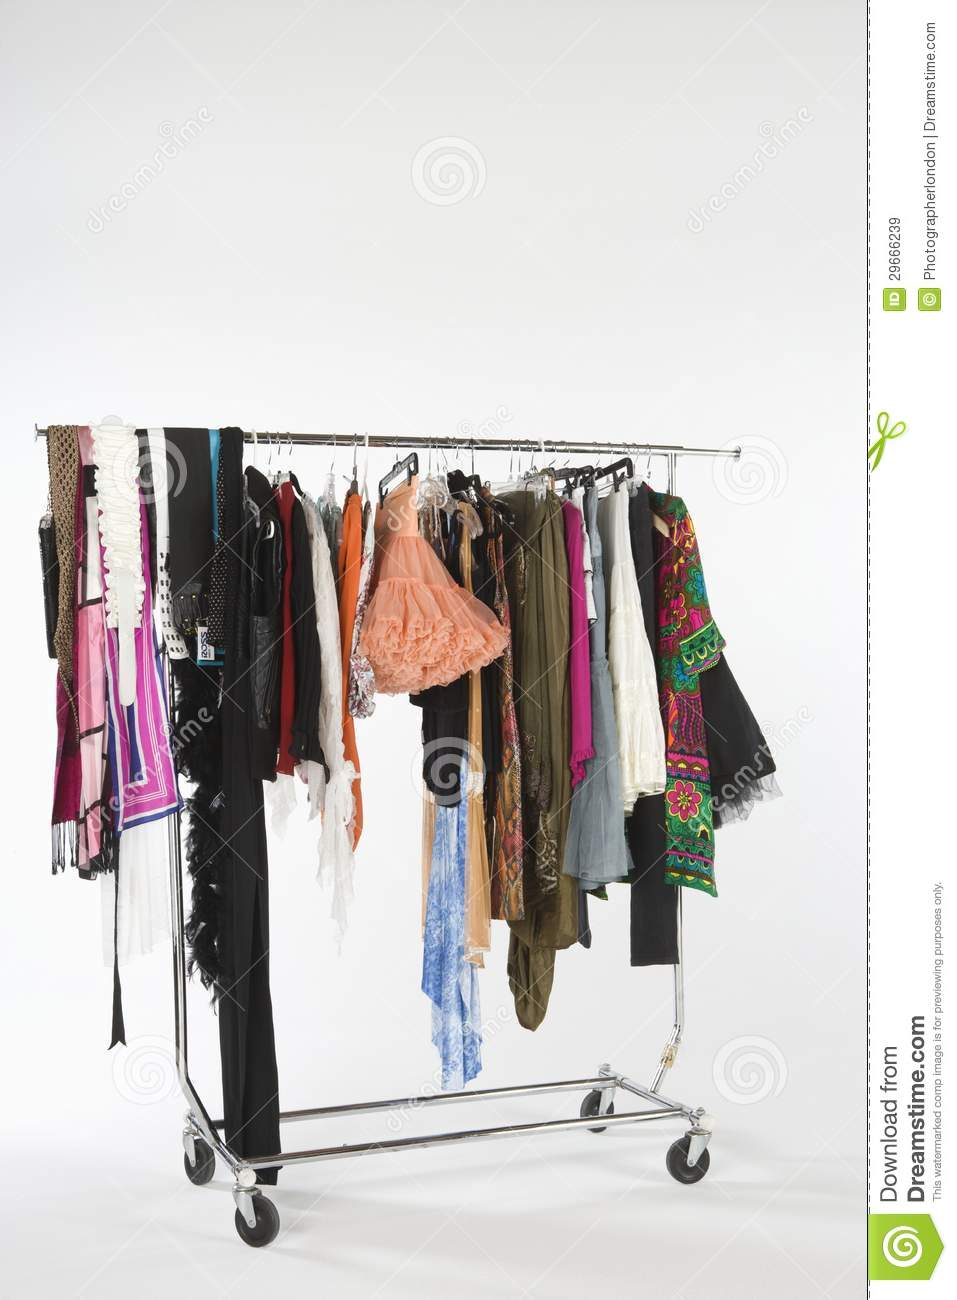 Fashion Clothes Hanging On Clothes Rail Stock Image - Image Of Clothes Casual 29666239